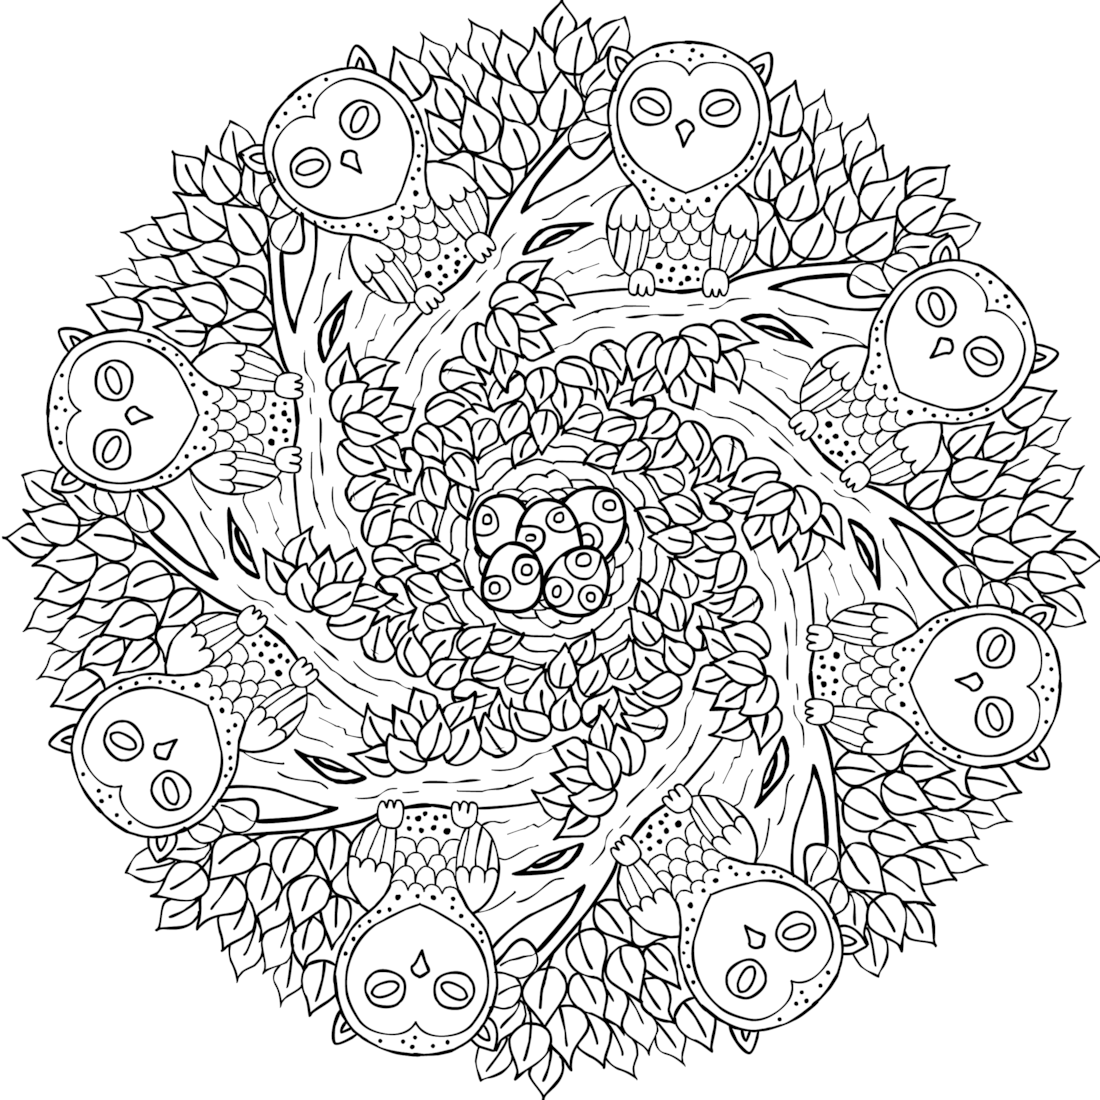 quot Old Souls quot free printable mandala coloring page from